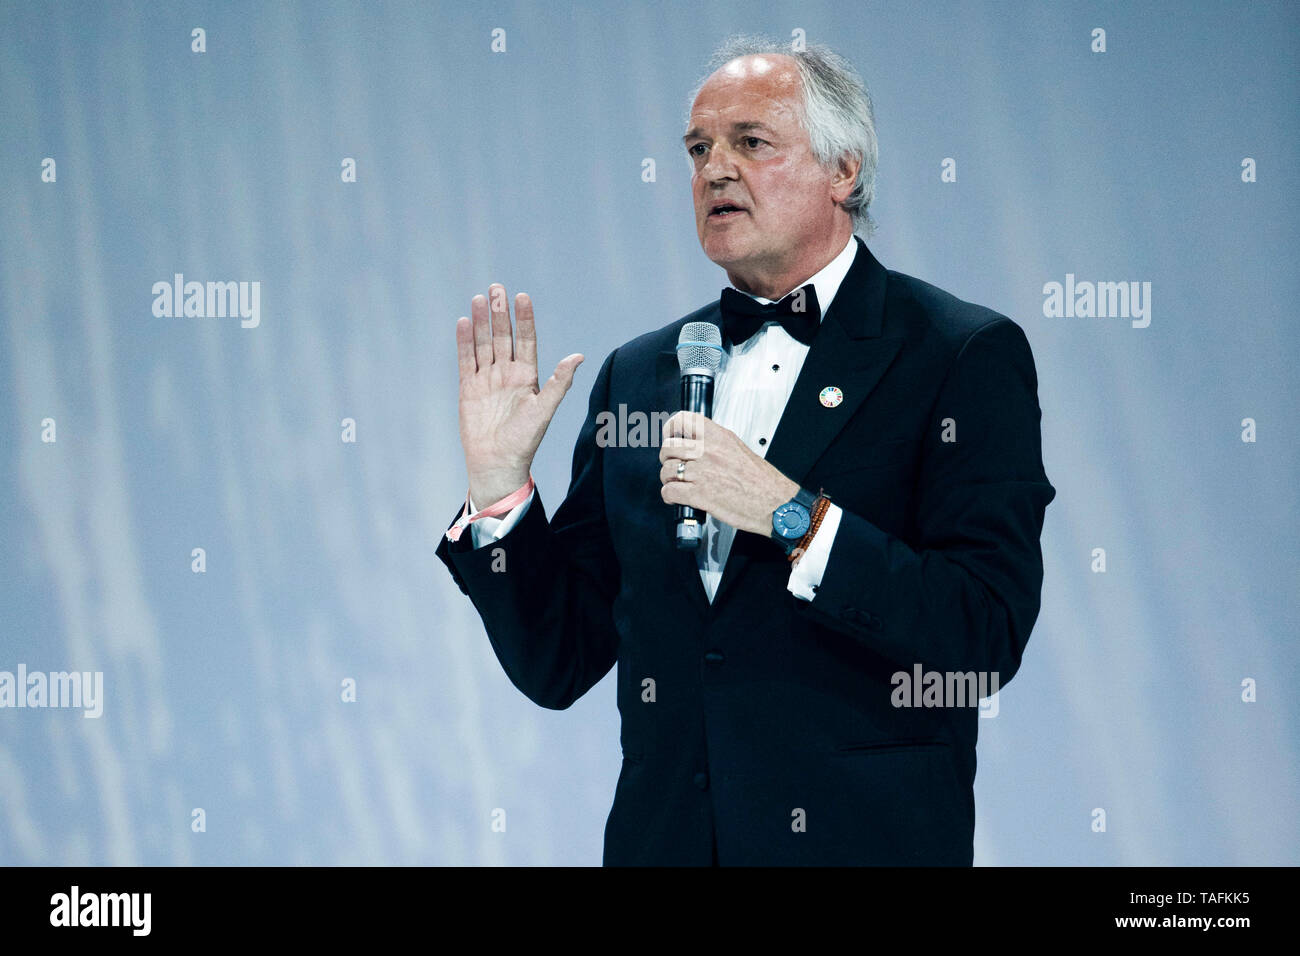 Berlin, Germany. 24th May, 2019. Unilever CEO Paul Polman speaks at the Green Awards ceremony. The trophies will be awarded during the Greentech Festival. Credit: Carsten Koall/dpa/Alamy Live News - Stock Image